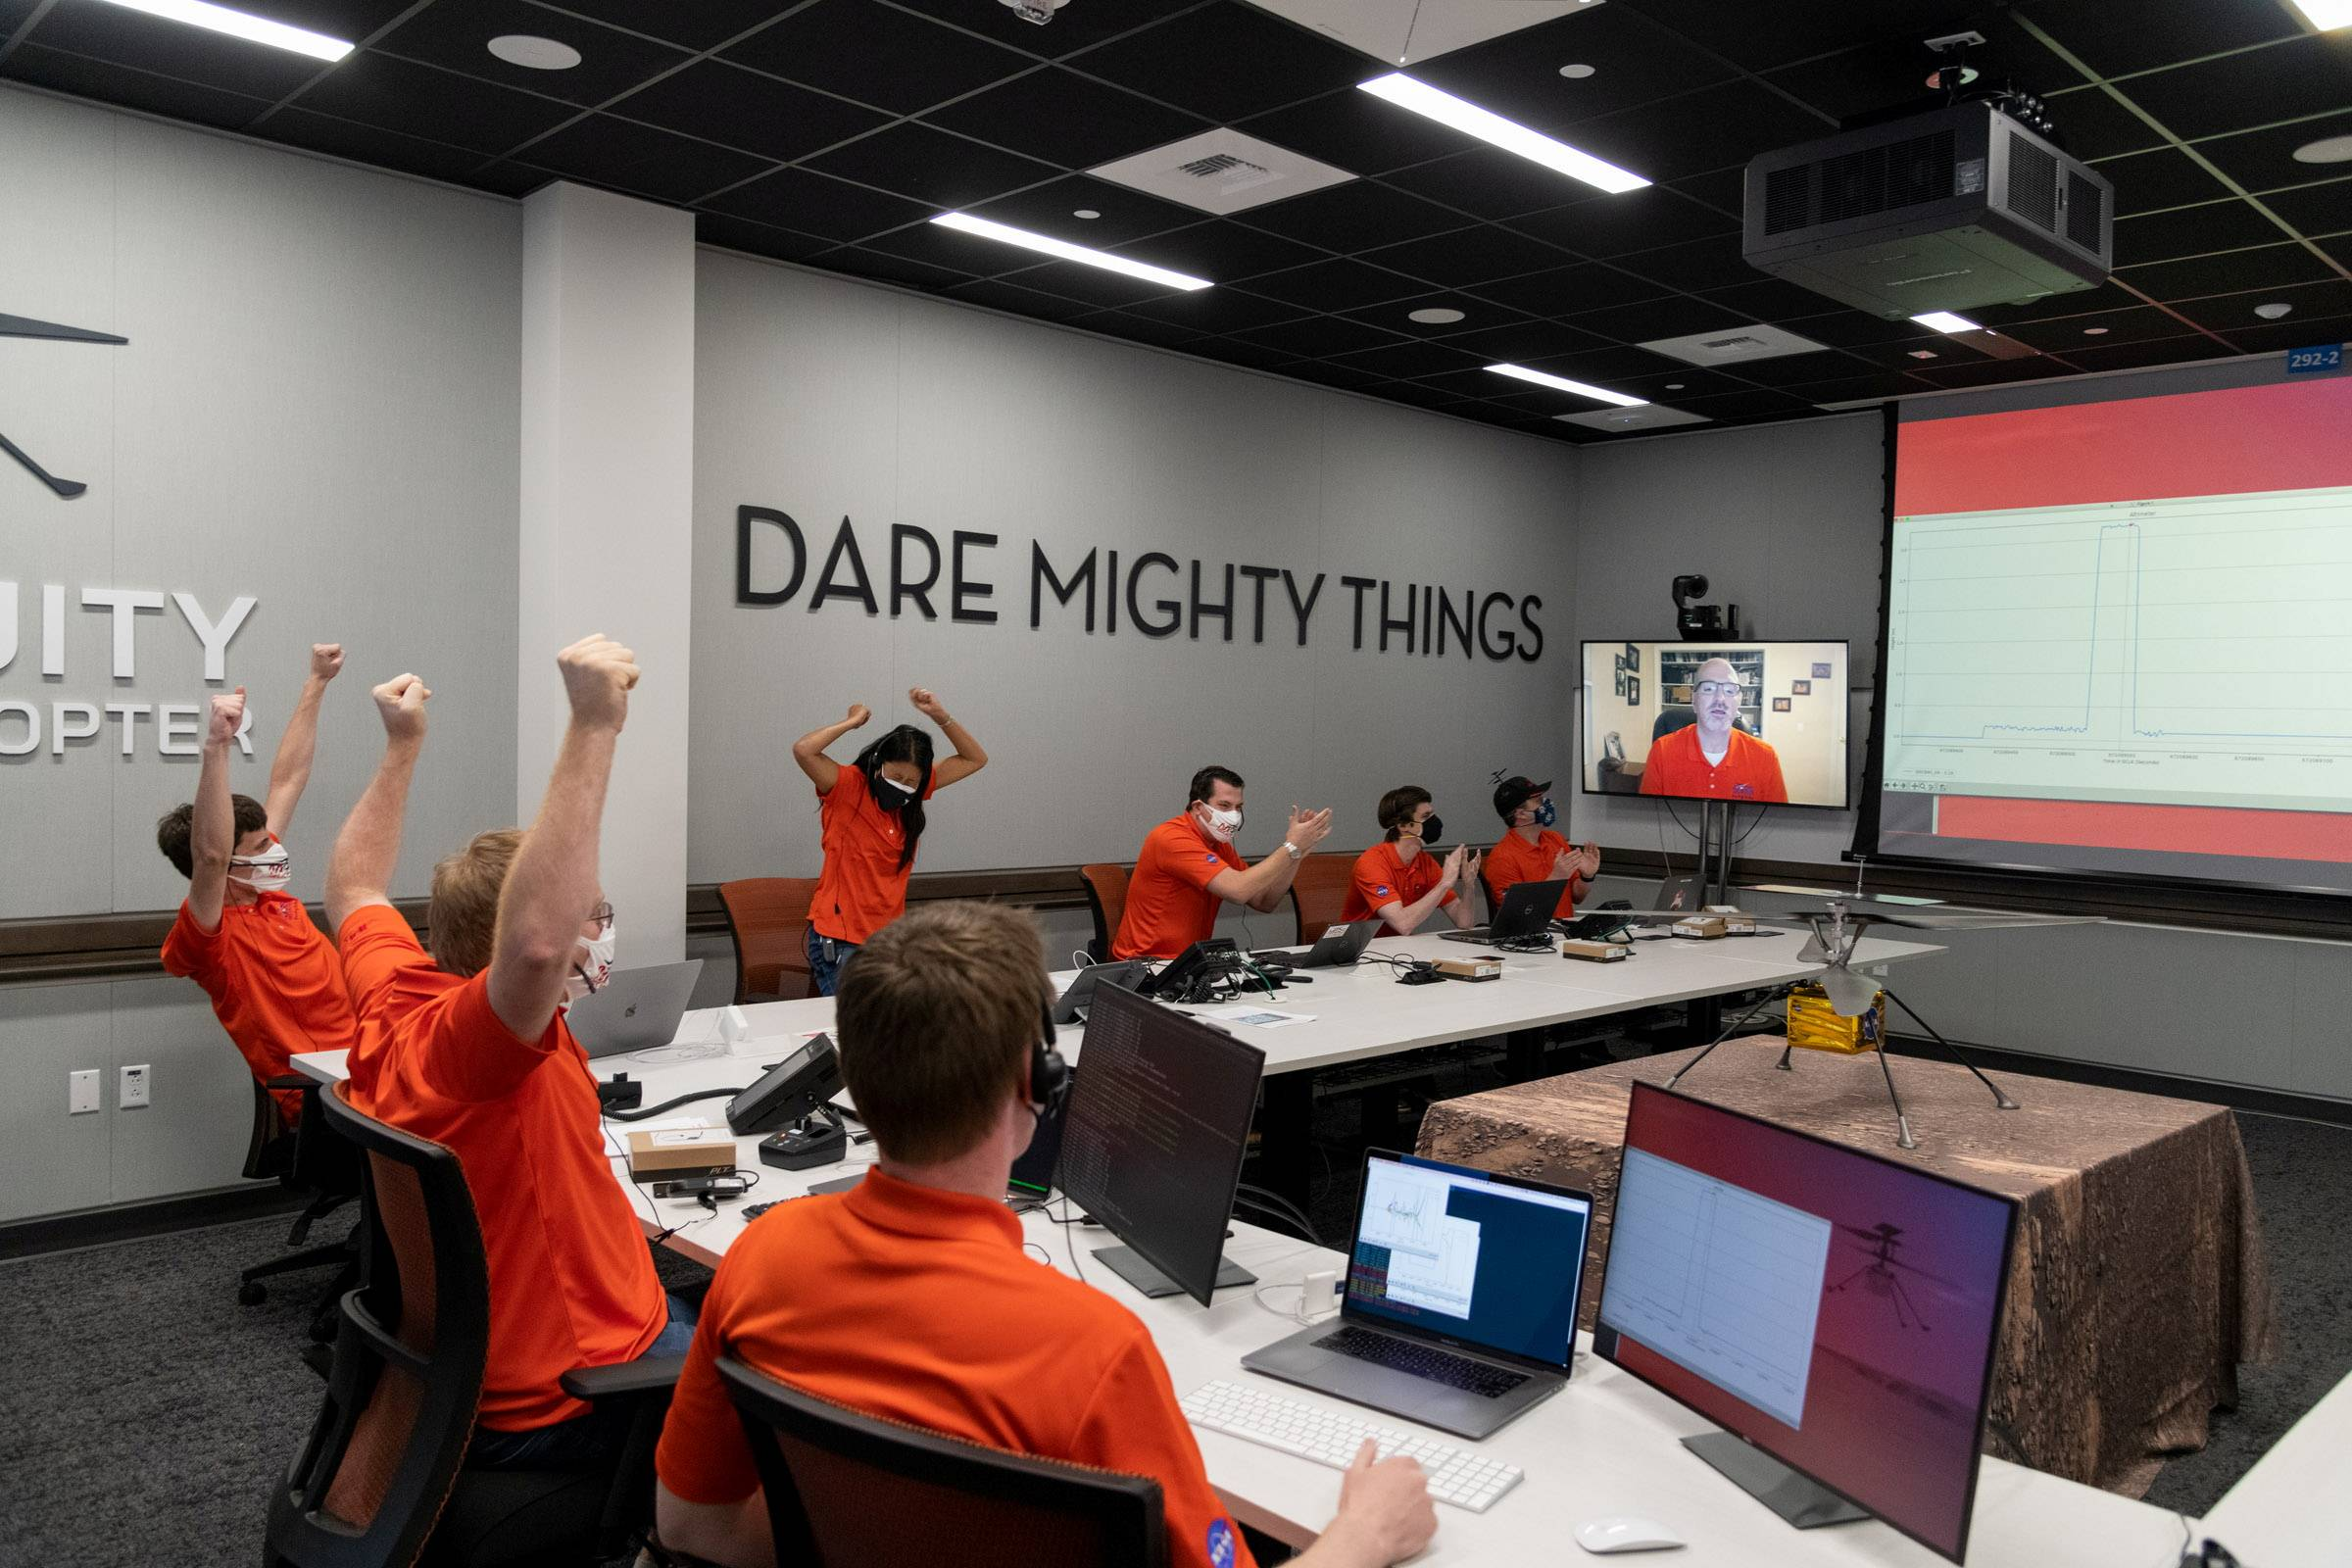 Members of NASA's Ingenuity helicopter team in the Space Flight Operations Facility at NASA's Jet Propulsion Laboratory in Pasadena, California, react Monday to data showing that the helicopter completed its first flight on Mars. | R. LANNOM / NASA / JPL-CALTECH / HANDOUT VIA REUTERS